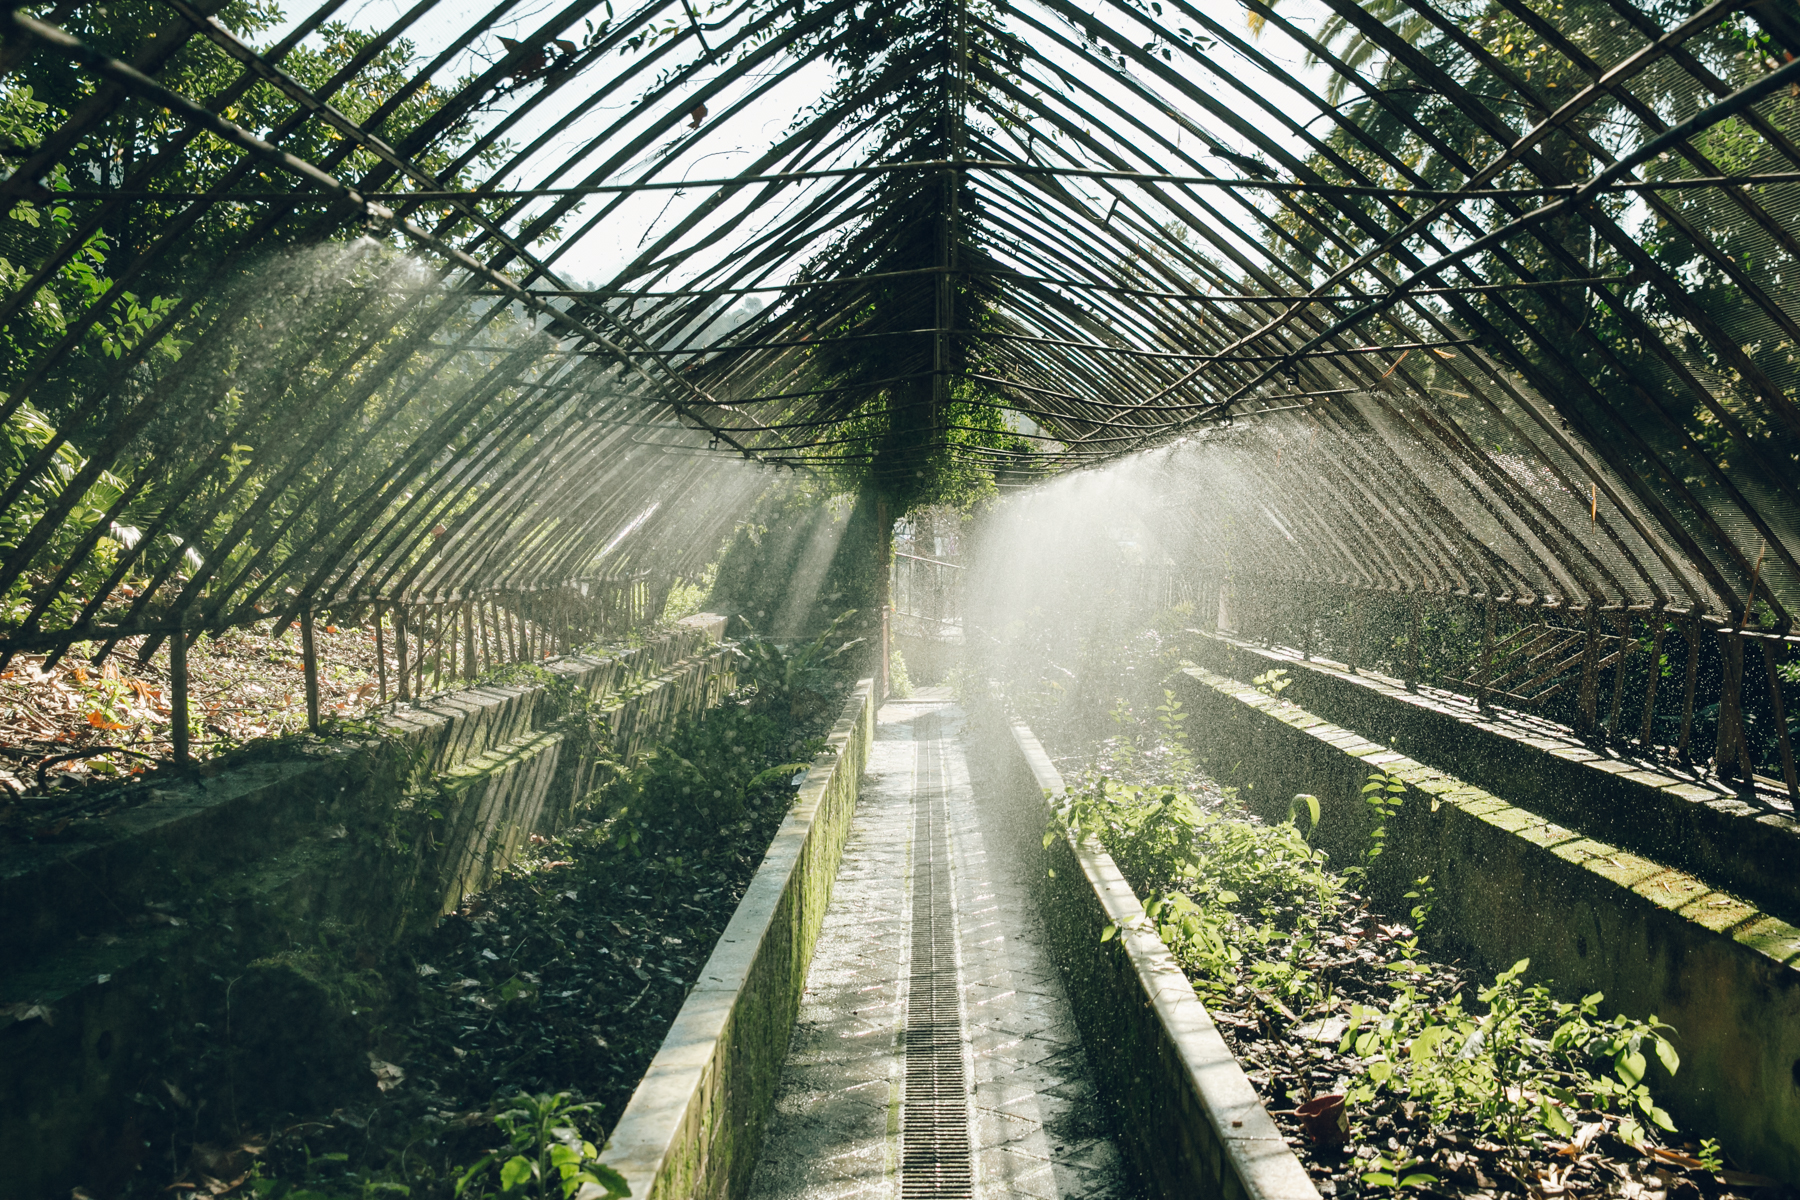 Watering time in the greenhouse in Malaga Botanical Gardens, Spain.